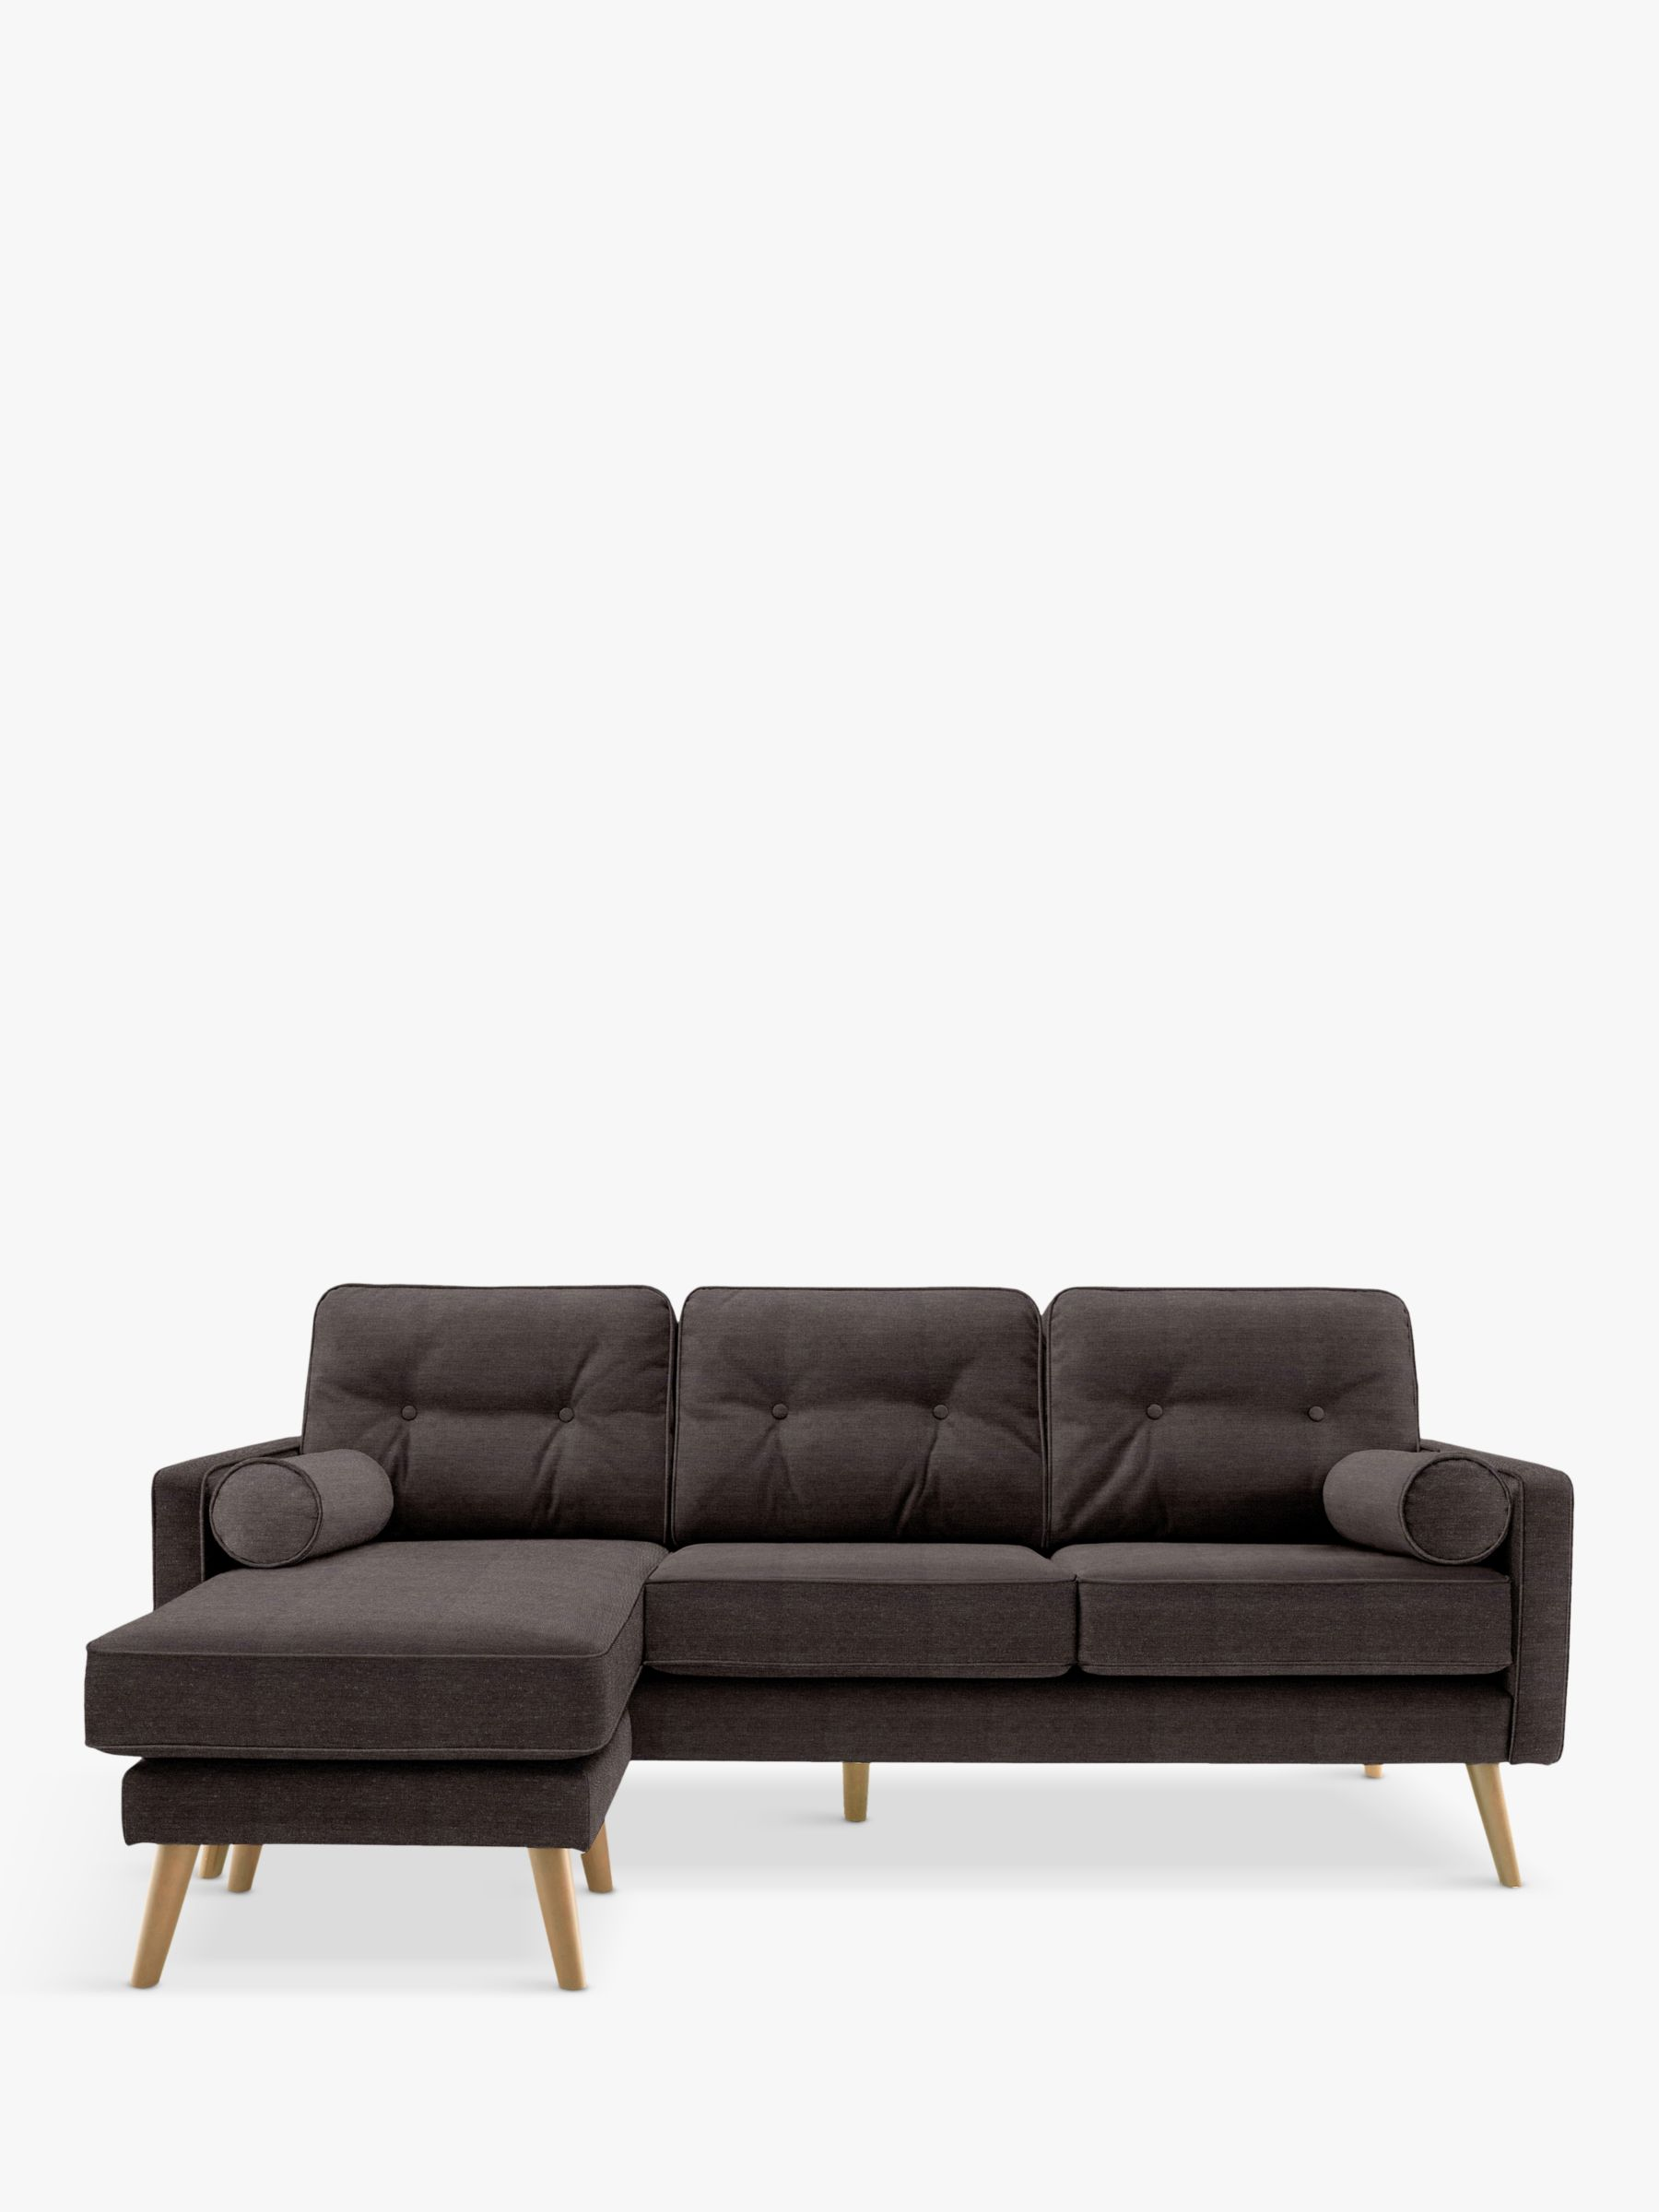 G Plan Vintage G Plan Vintage The Sixty Five Large 3 Seater Chaise End Sofa